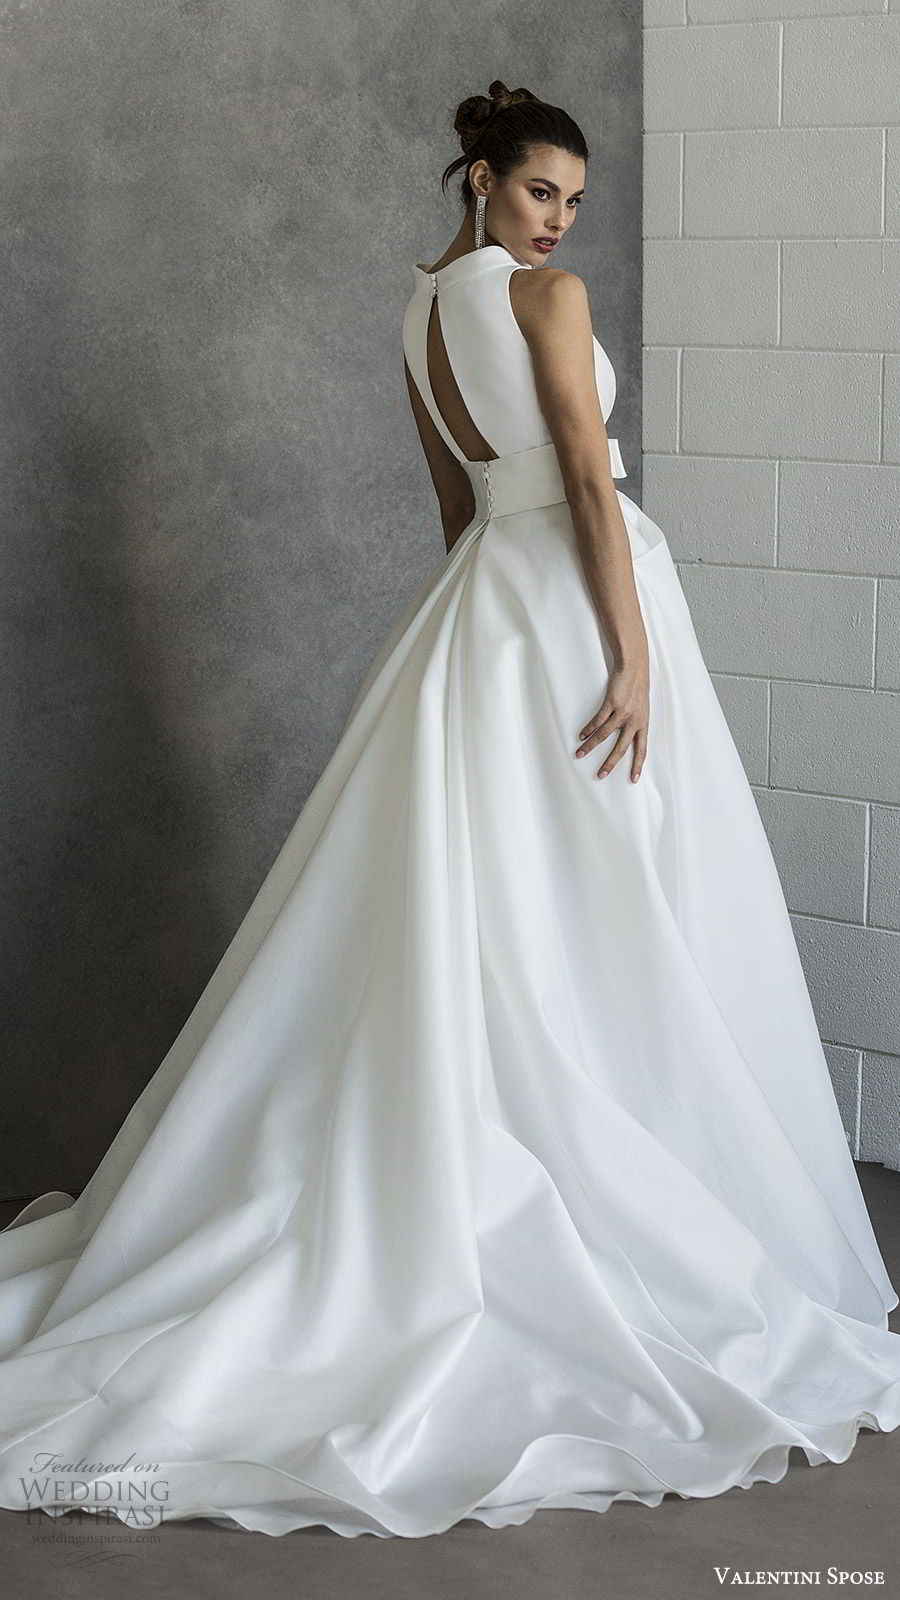 valentini spose spring 2020 bridal sleeveless split funnel neck a line ball gown wedding dress (16) pocket bow waist minimal modern chapel train bv